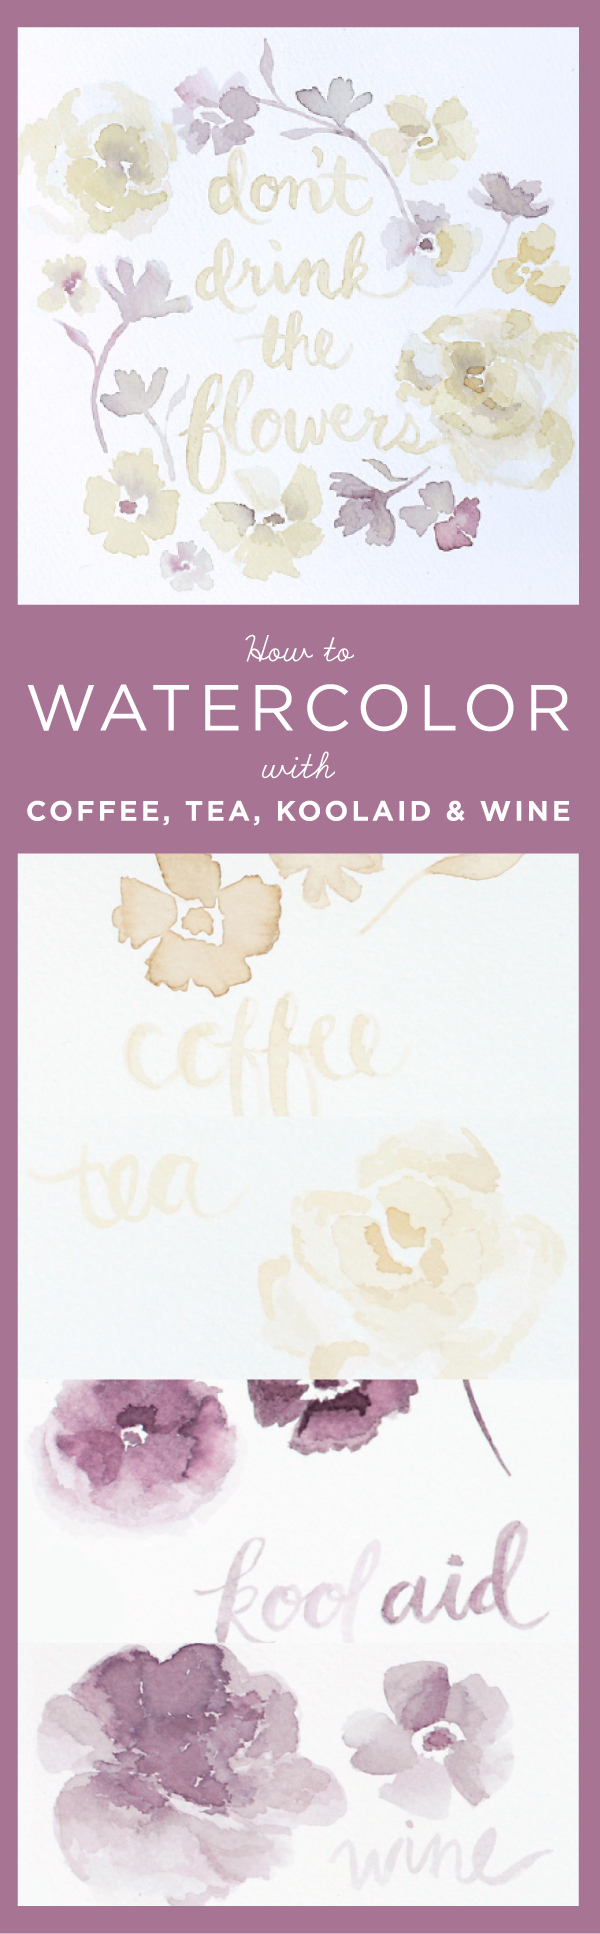 Watercoloring_coffee_tea_wine_koolaid.jpg